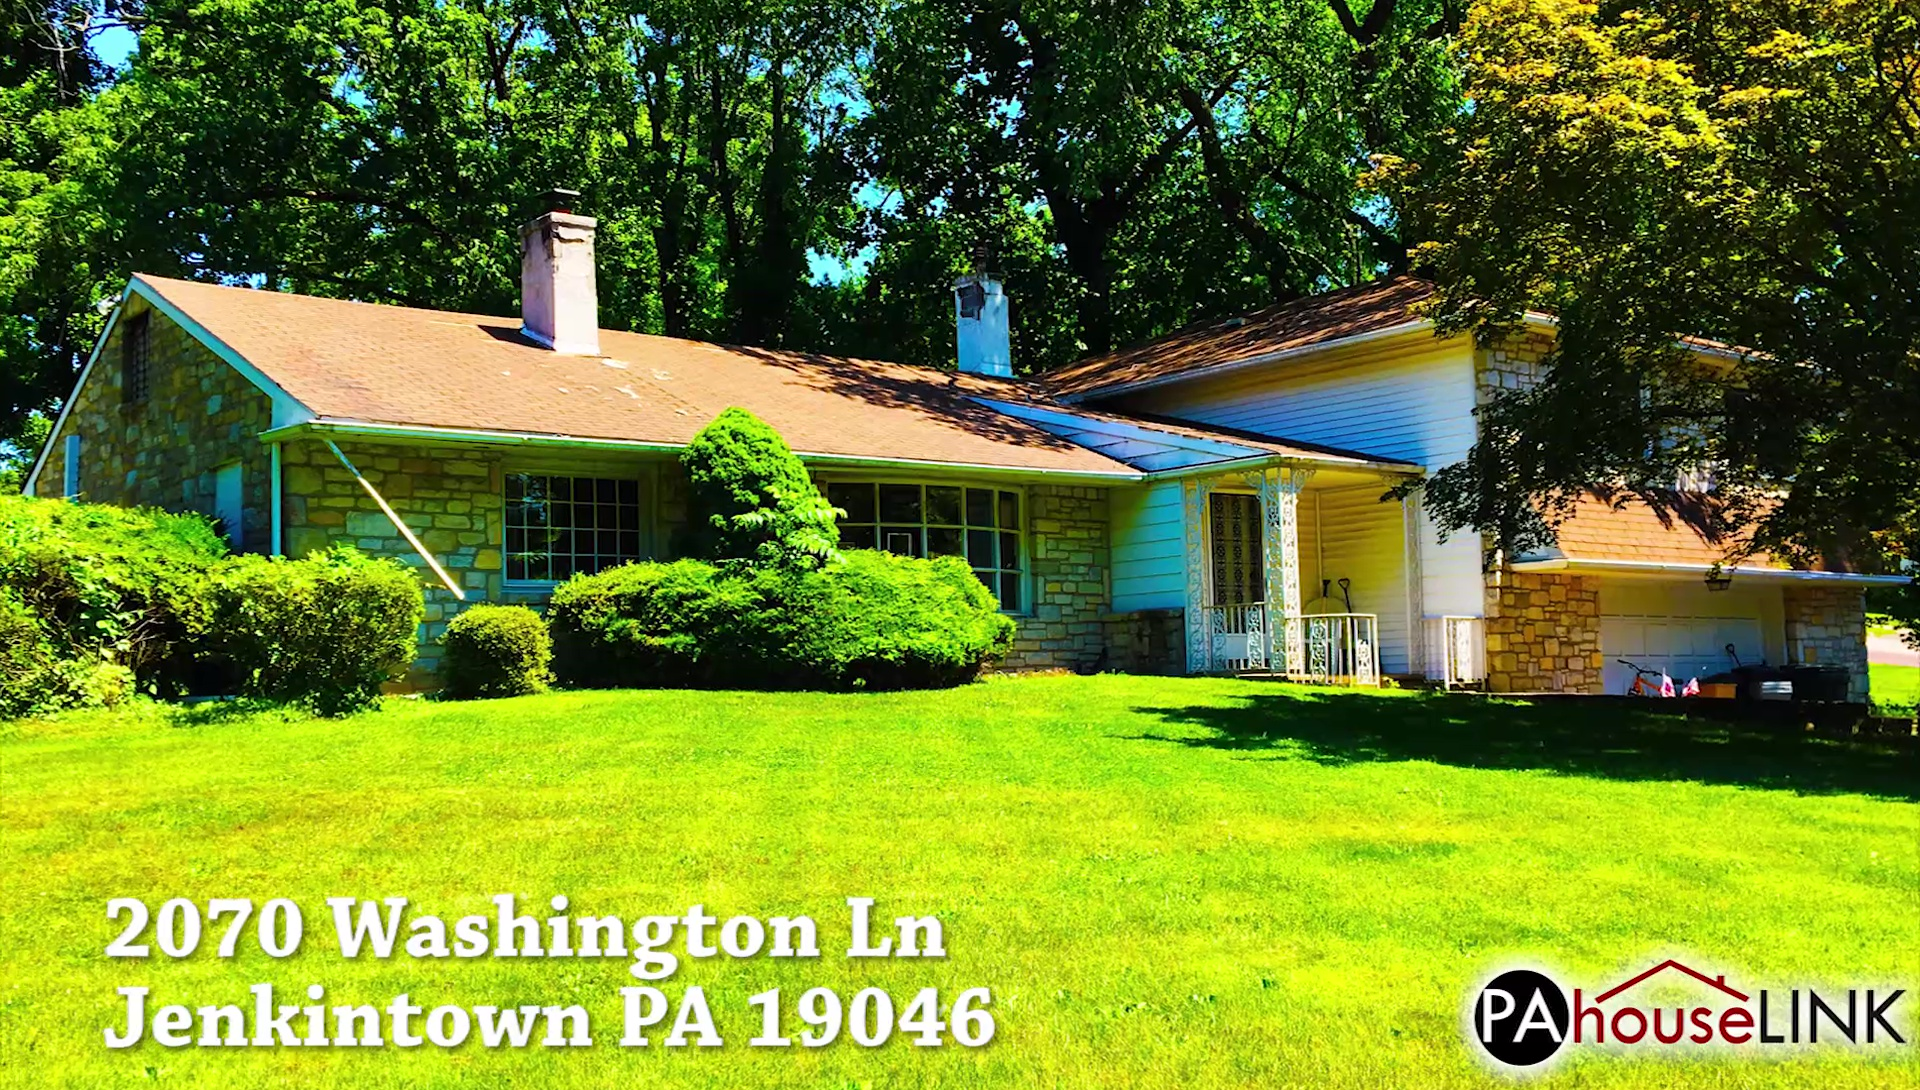 2070 Washington Ln Jenkintown PA 19046 | Foreclosure Properties Jenkintown PA 19046